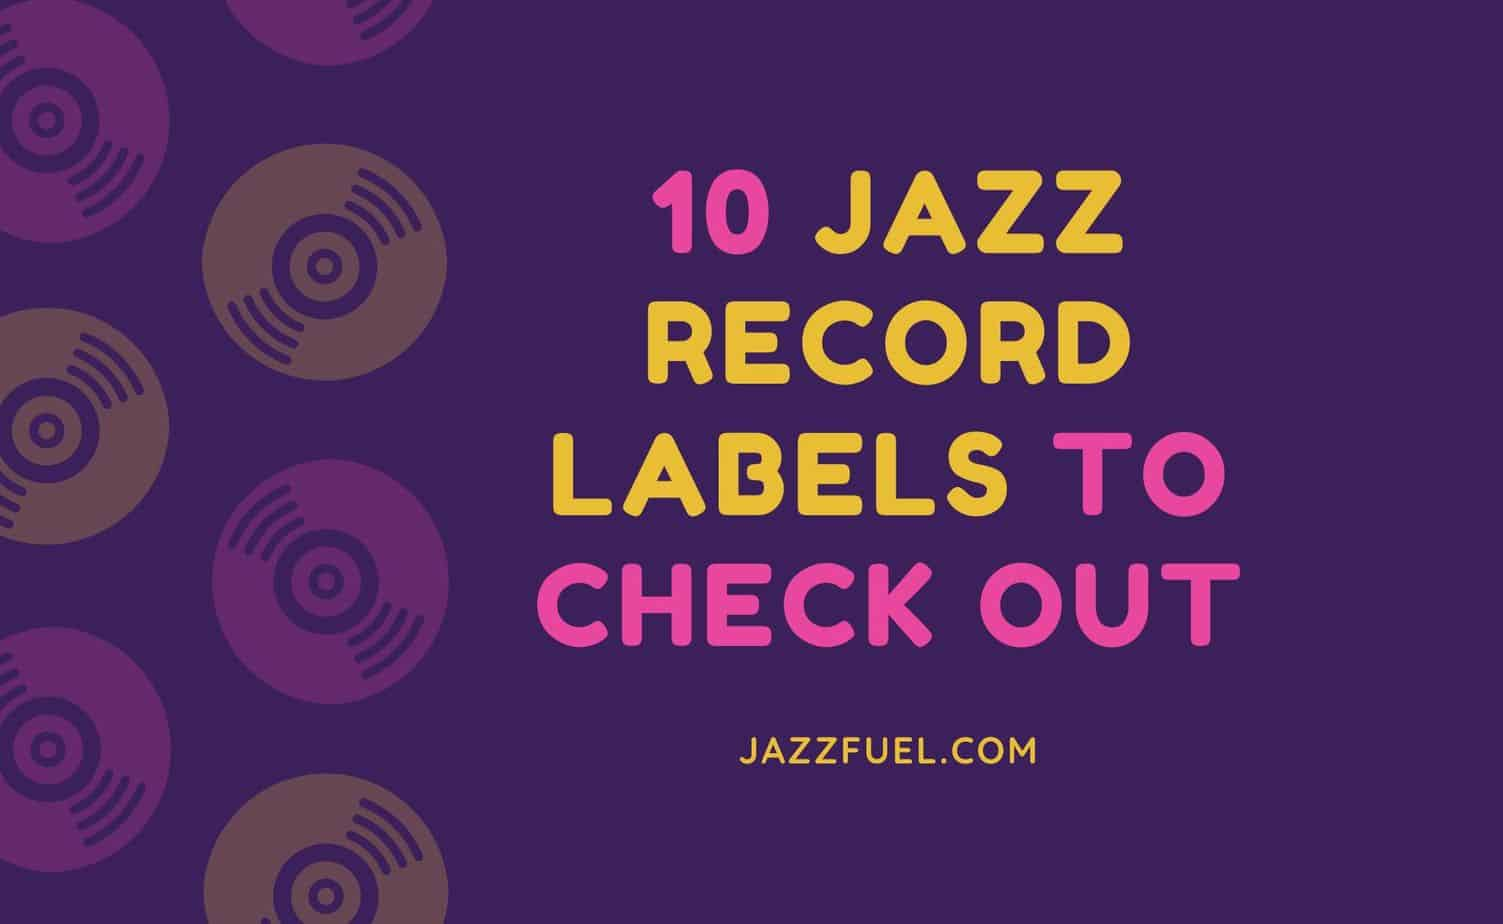 jazz record labels